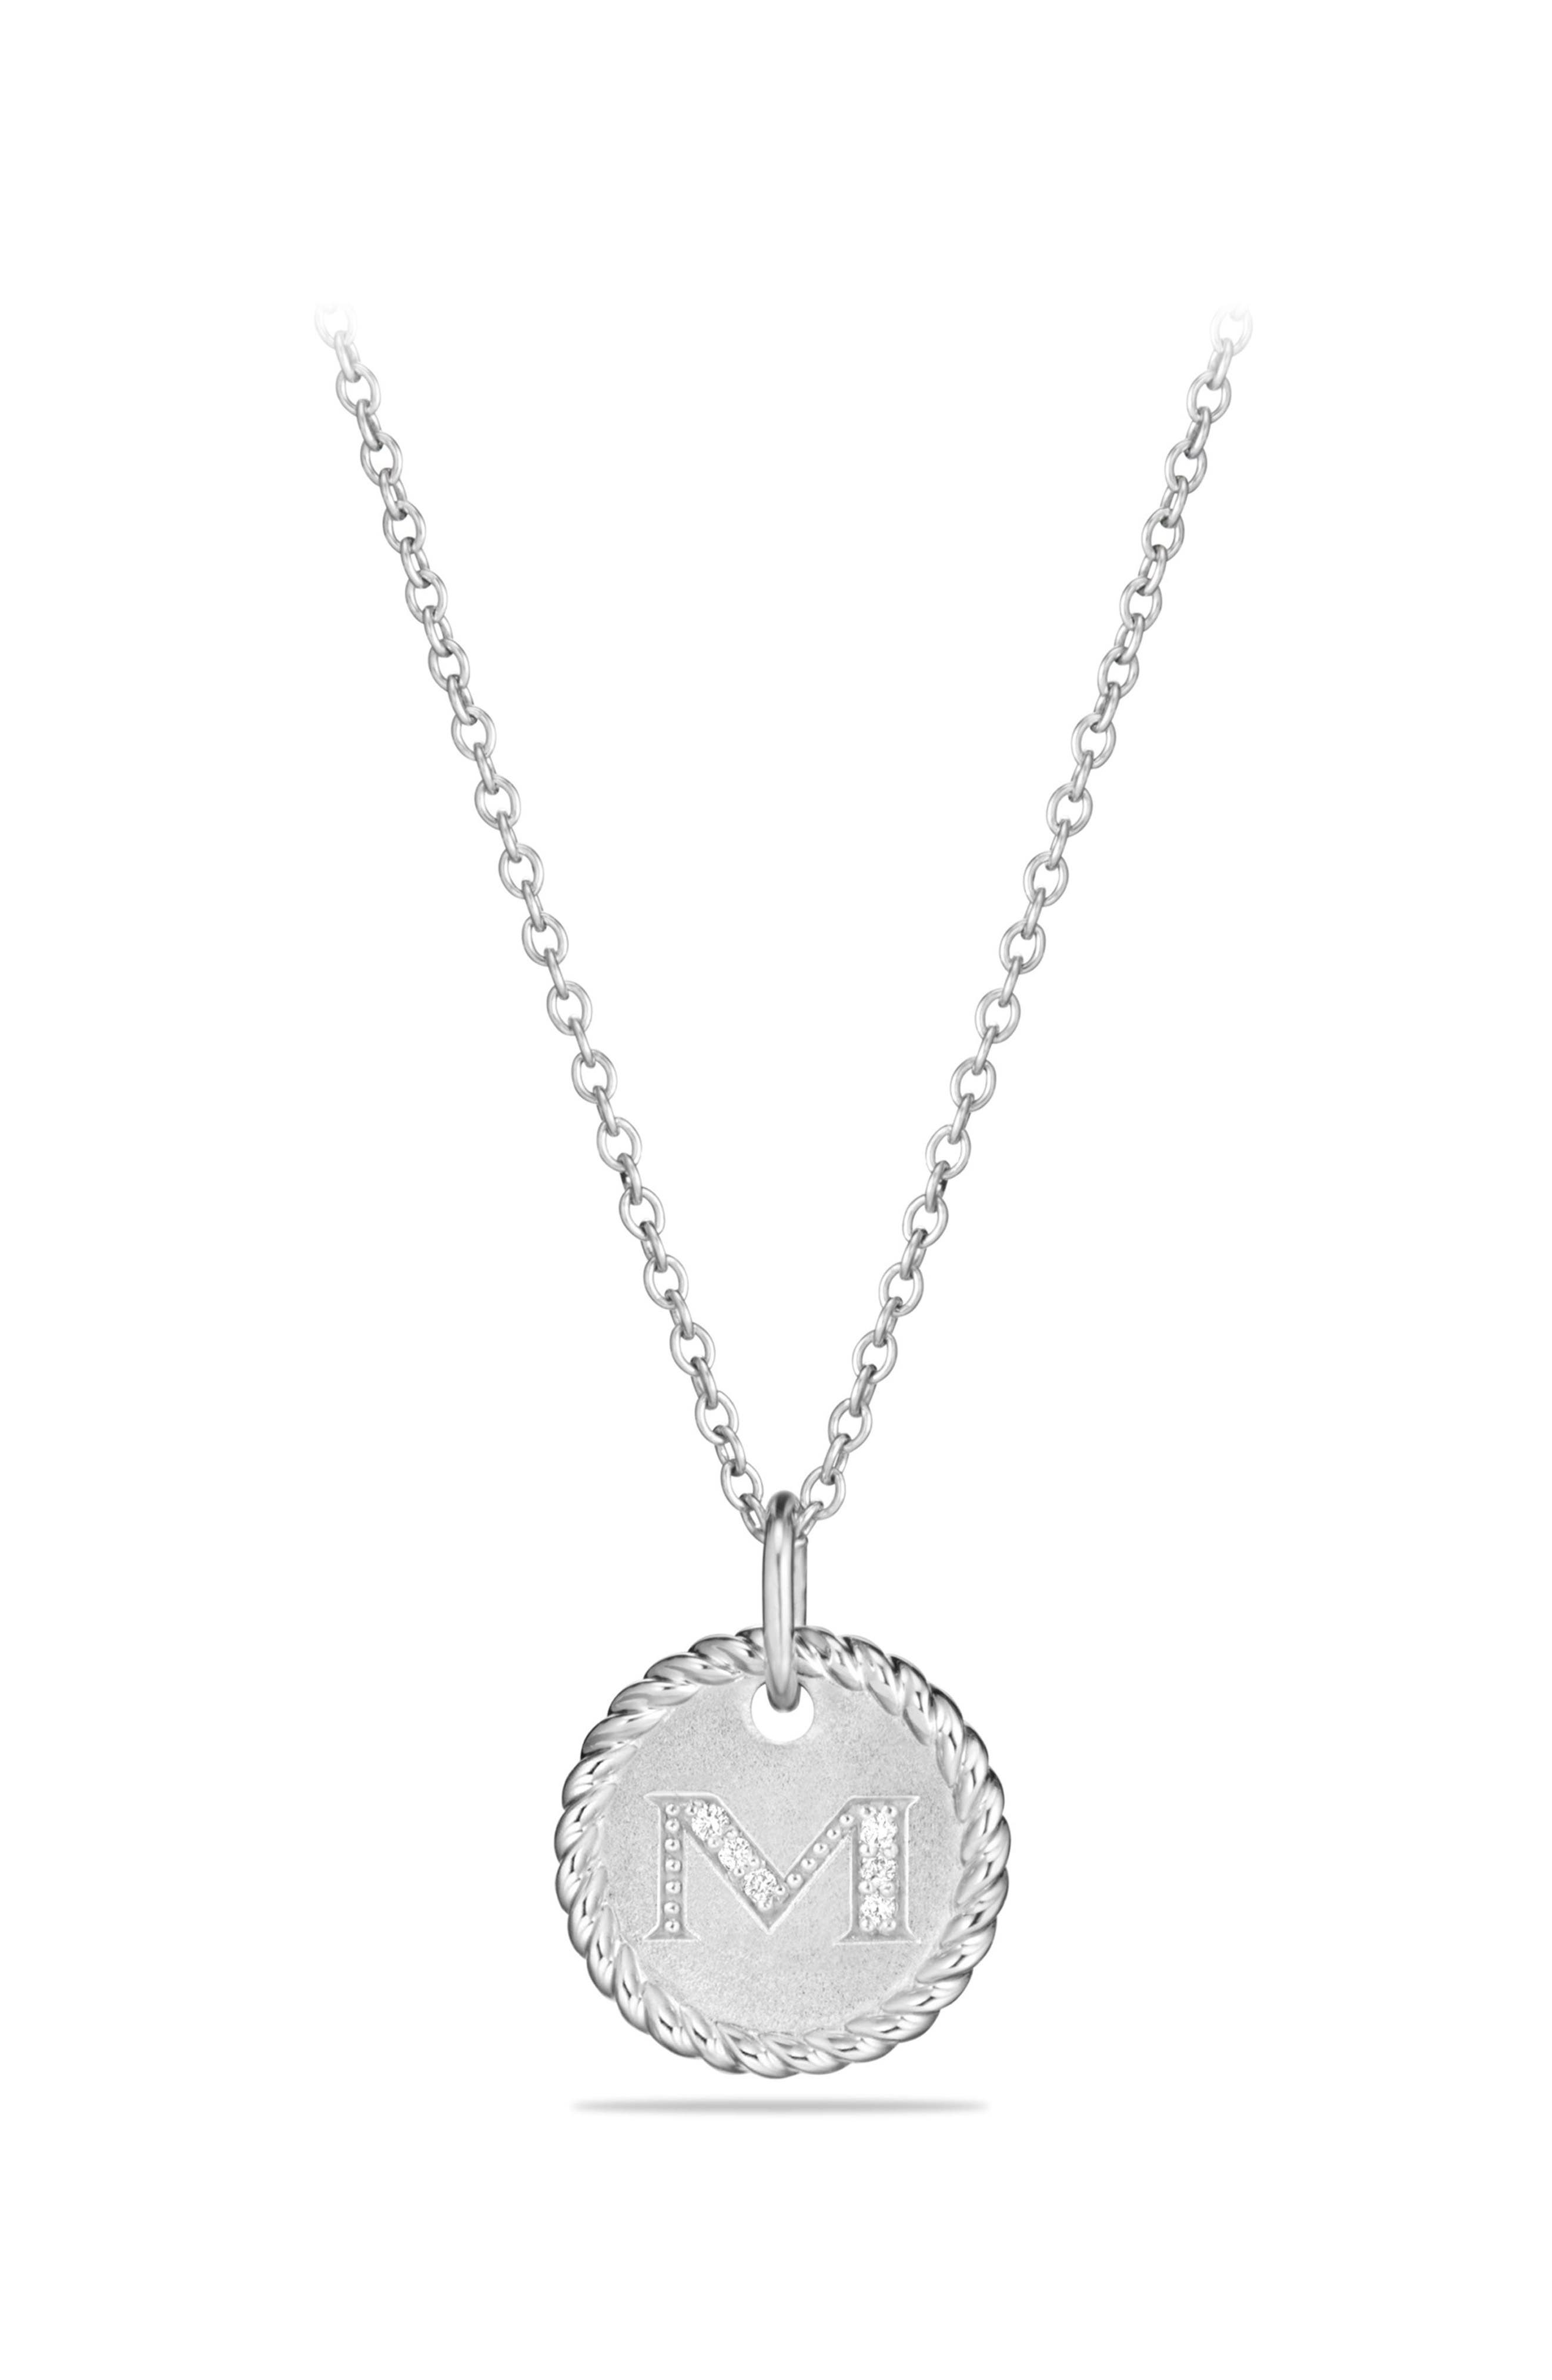 Main Image - David Yurman Initial Charm Necklace with Diamonds in 18K White Gold